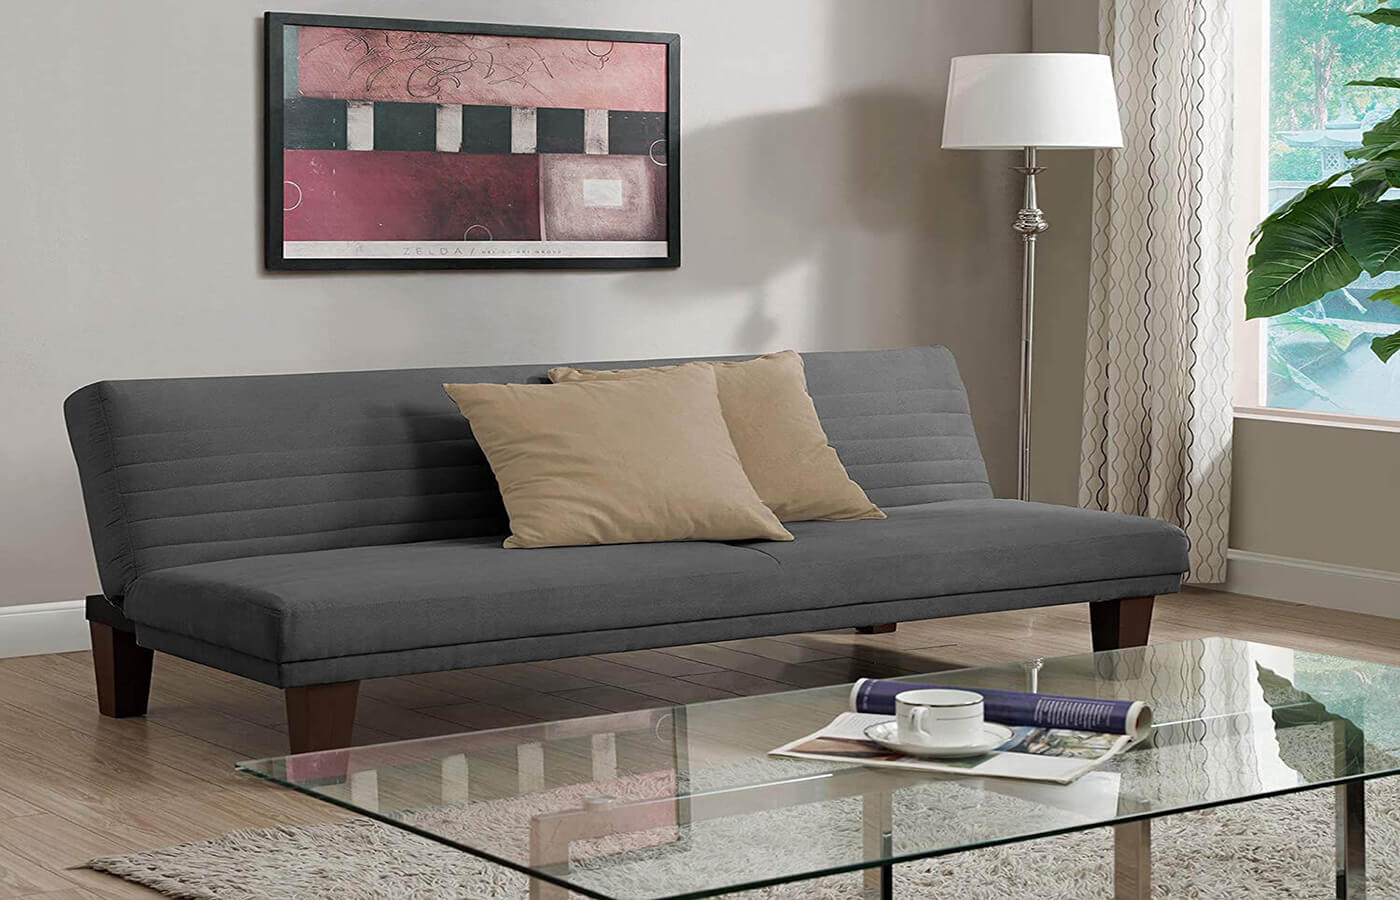 Top 10 Best Ikea Futons To Buy In 2021 Buying Guide Best Sofa Reviews